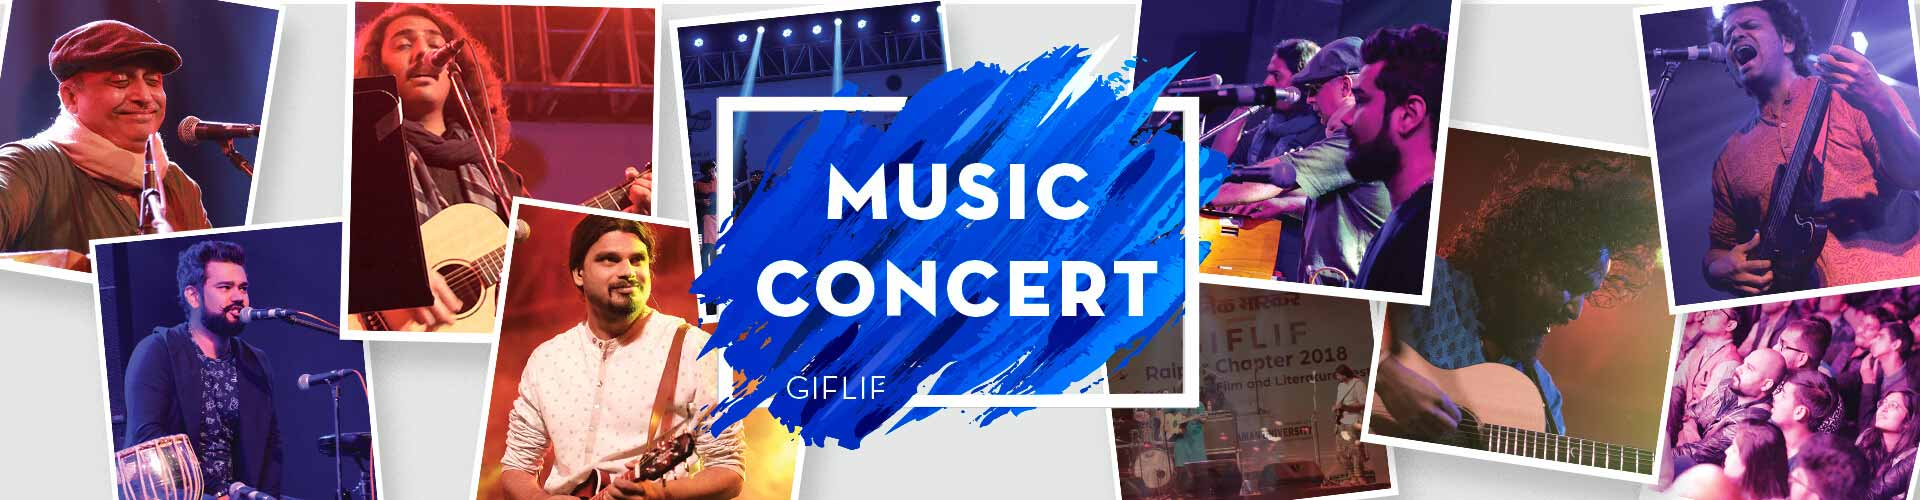 5-GIFLIF-Collage-(Music-Concert-Website)